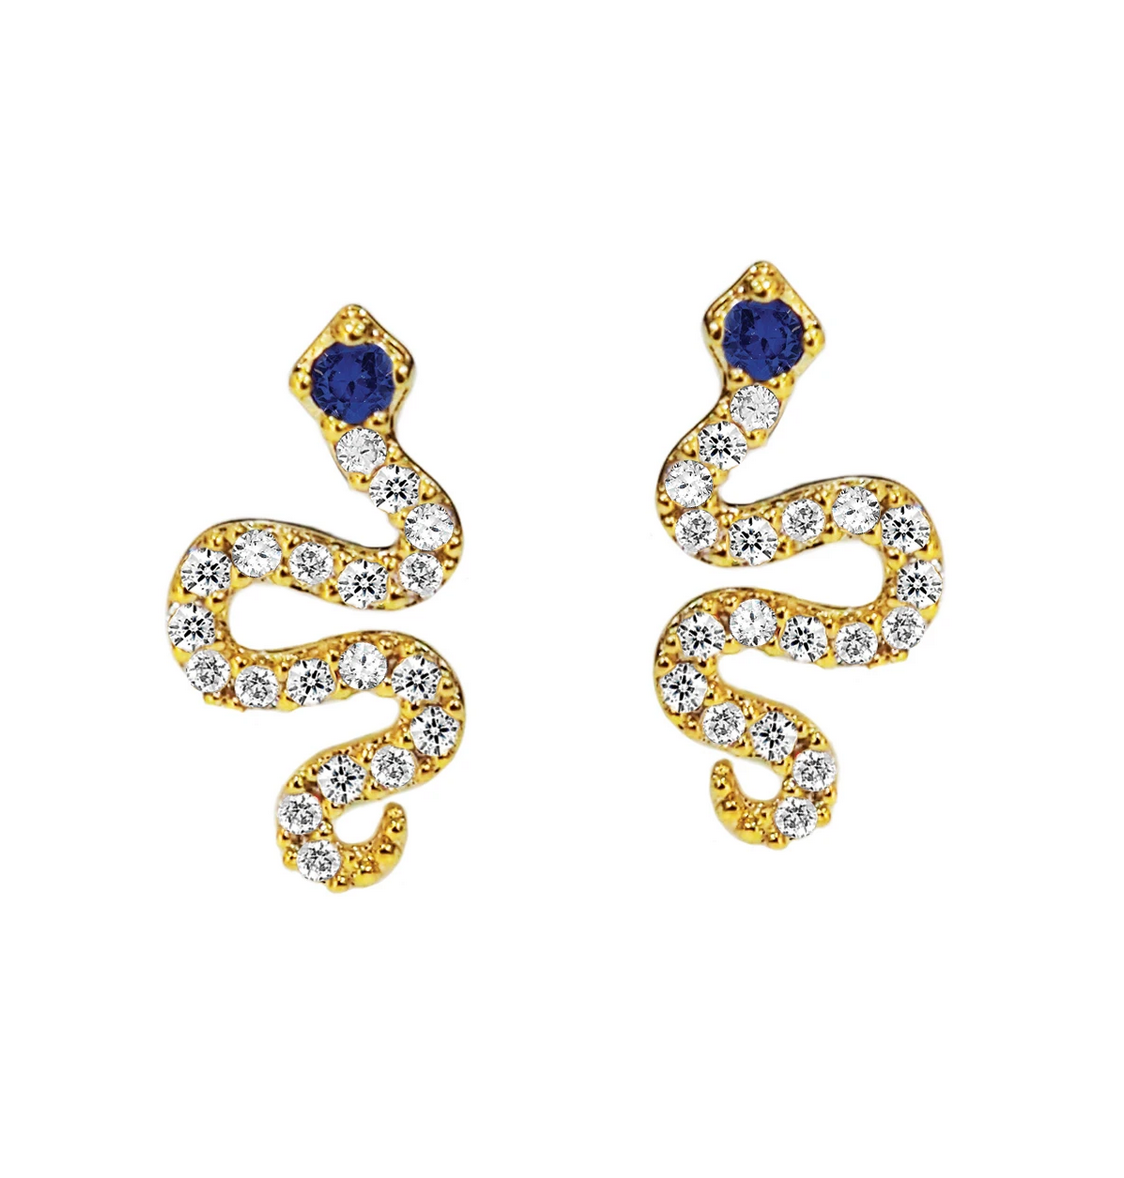 tai Gold CZ snake post earrings, with sapphire CZ